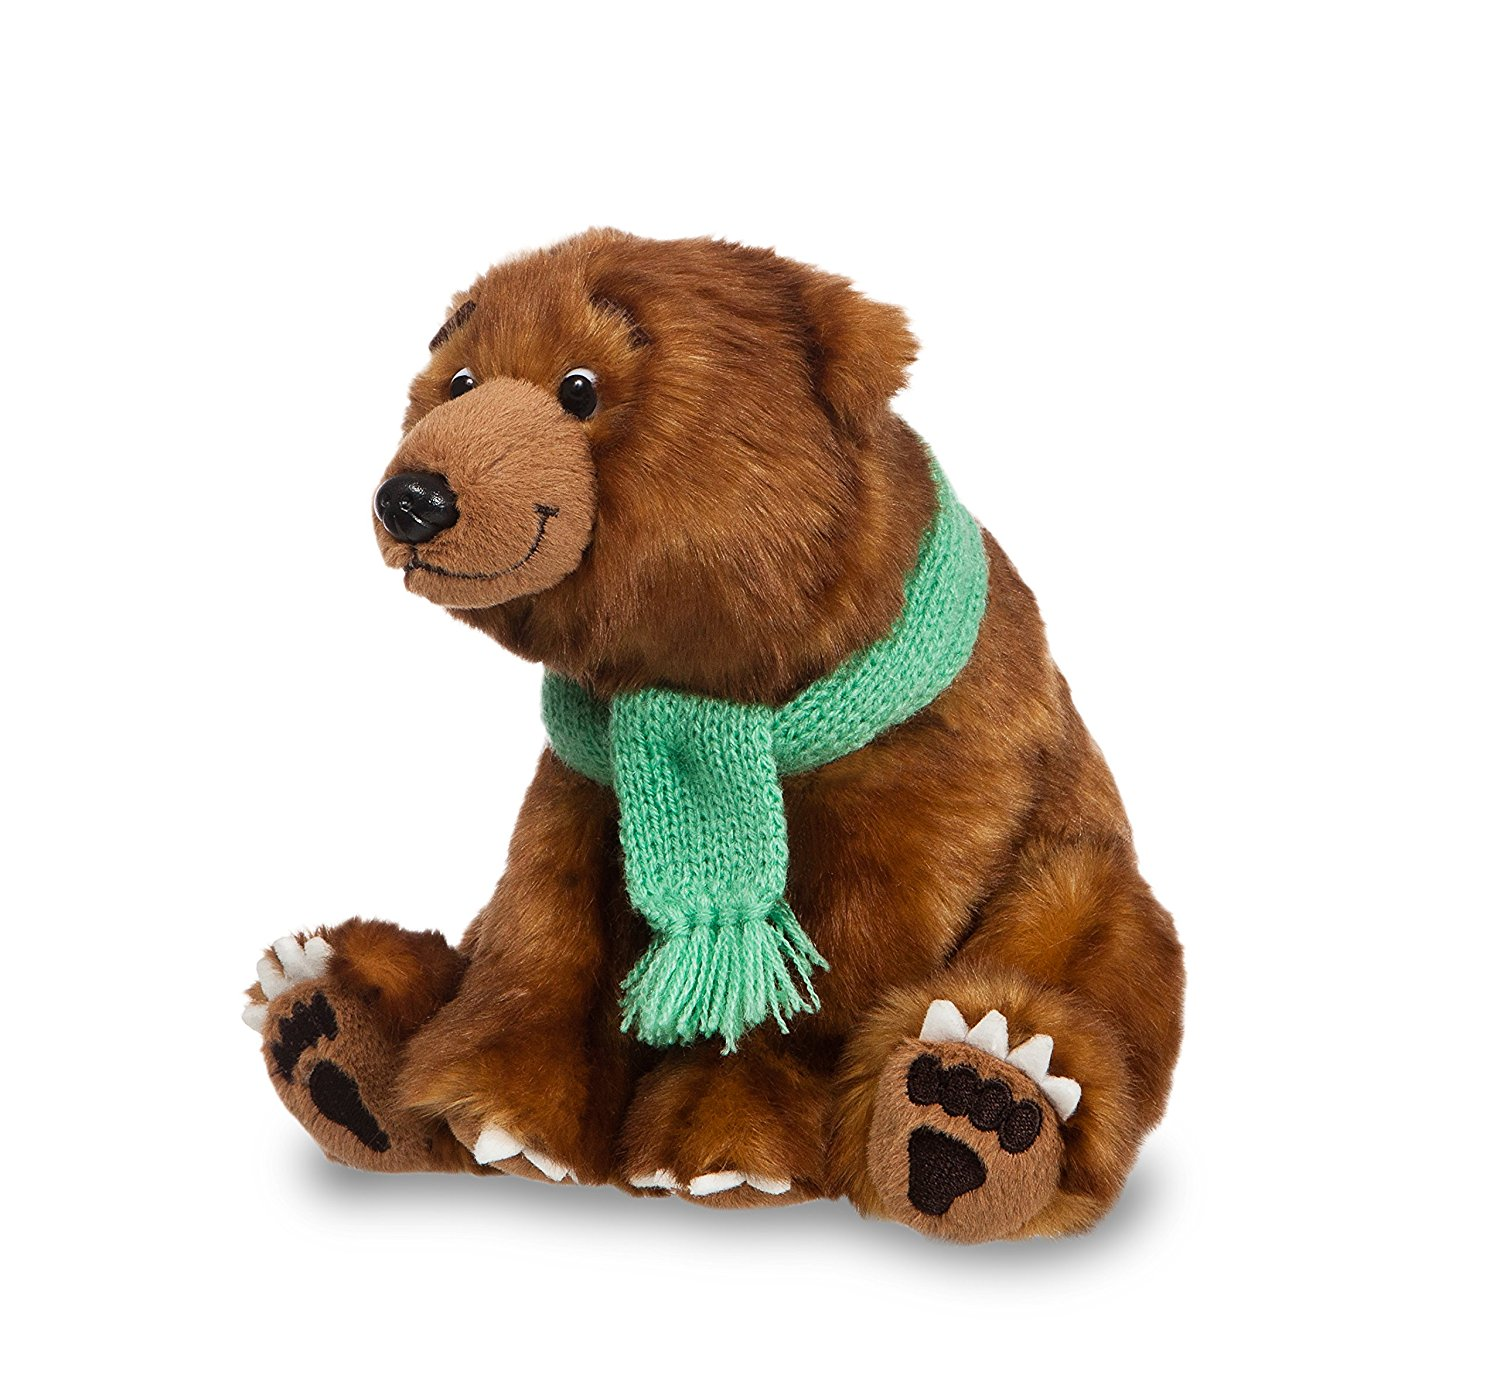 We're Going on a Bear Hunt bear plush 8